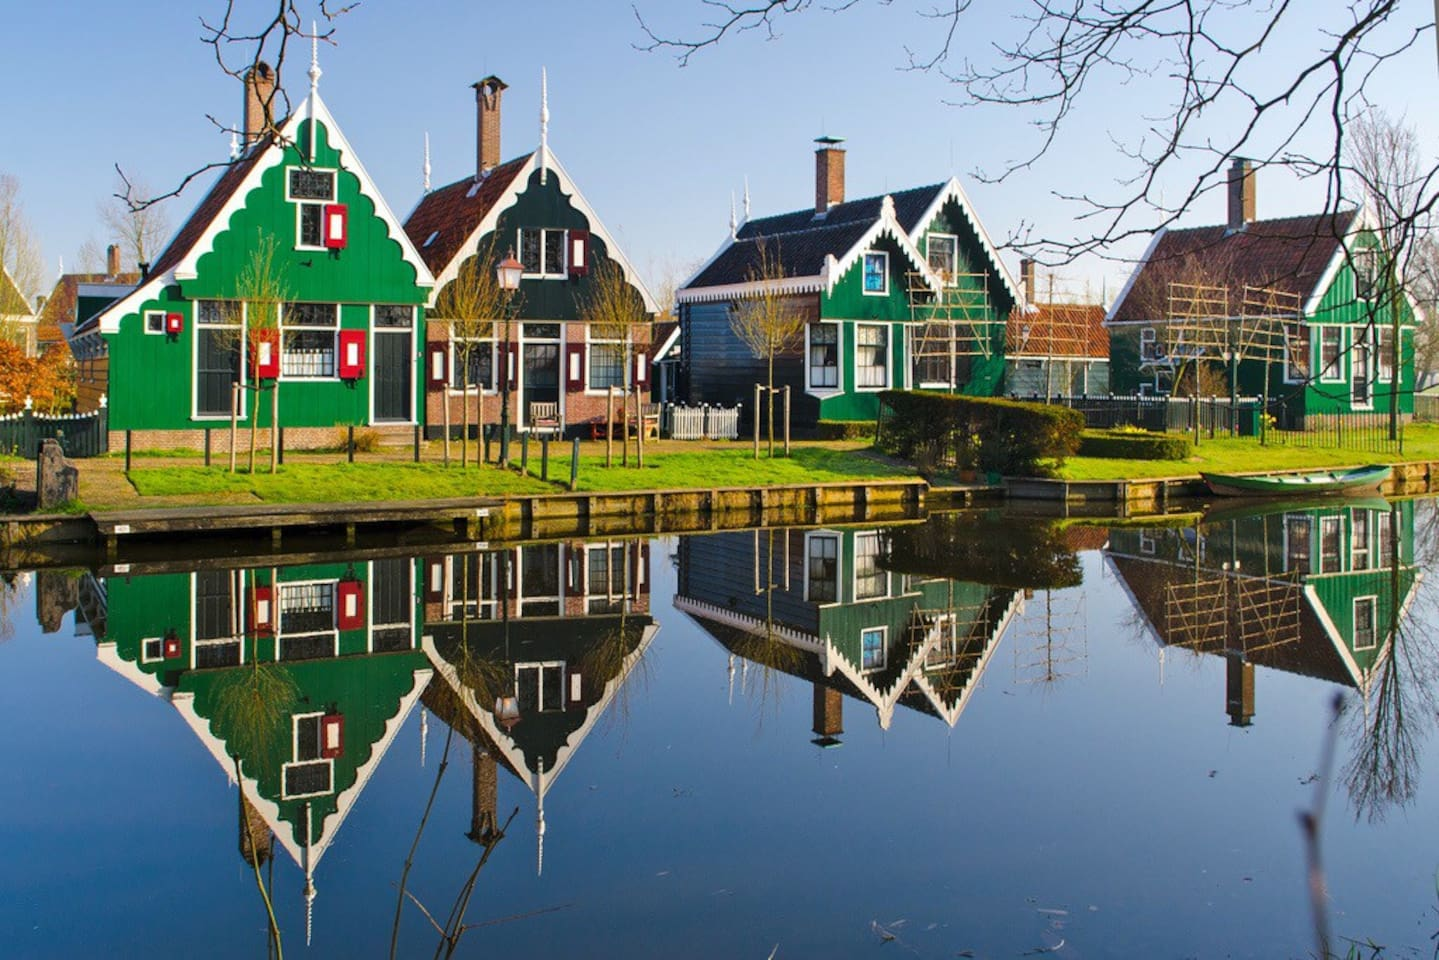 Zaanse Schans, is 41 min by car and 2 hours with public transport from our house.